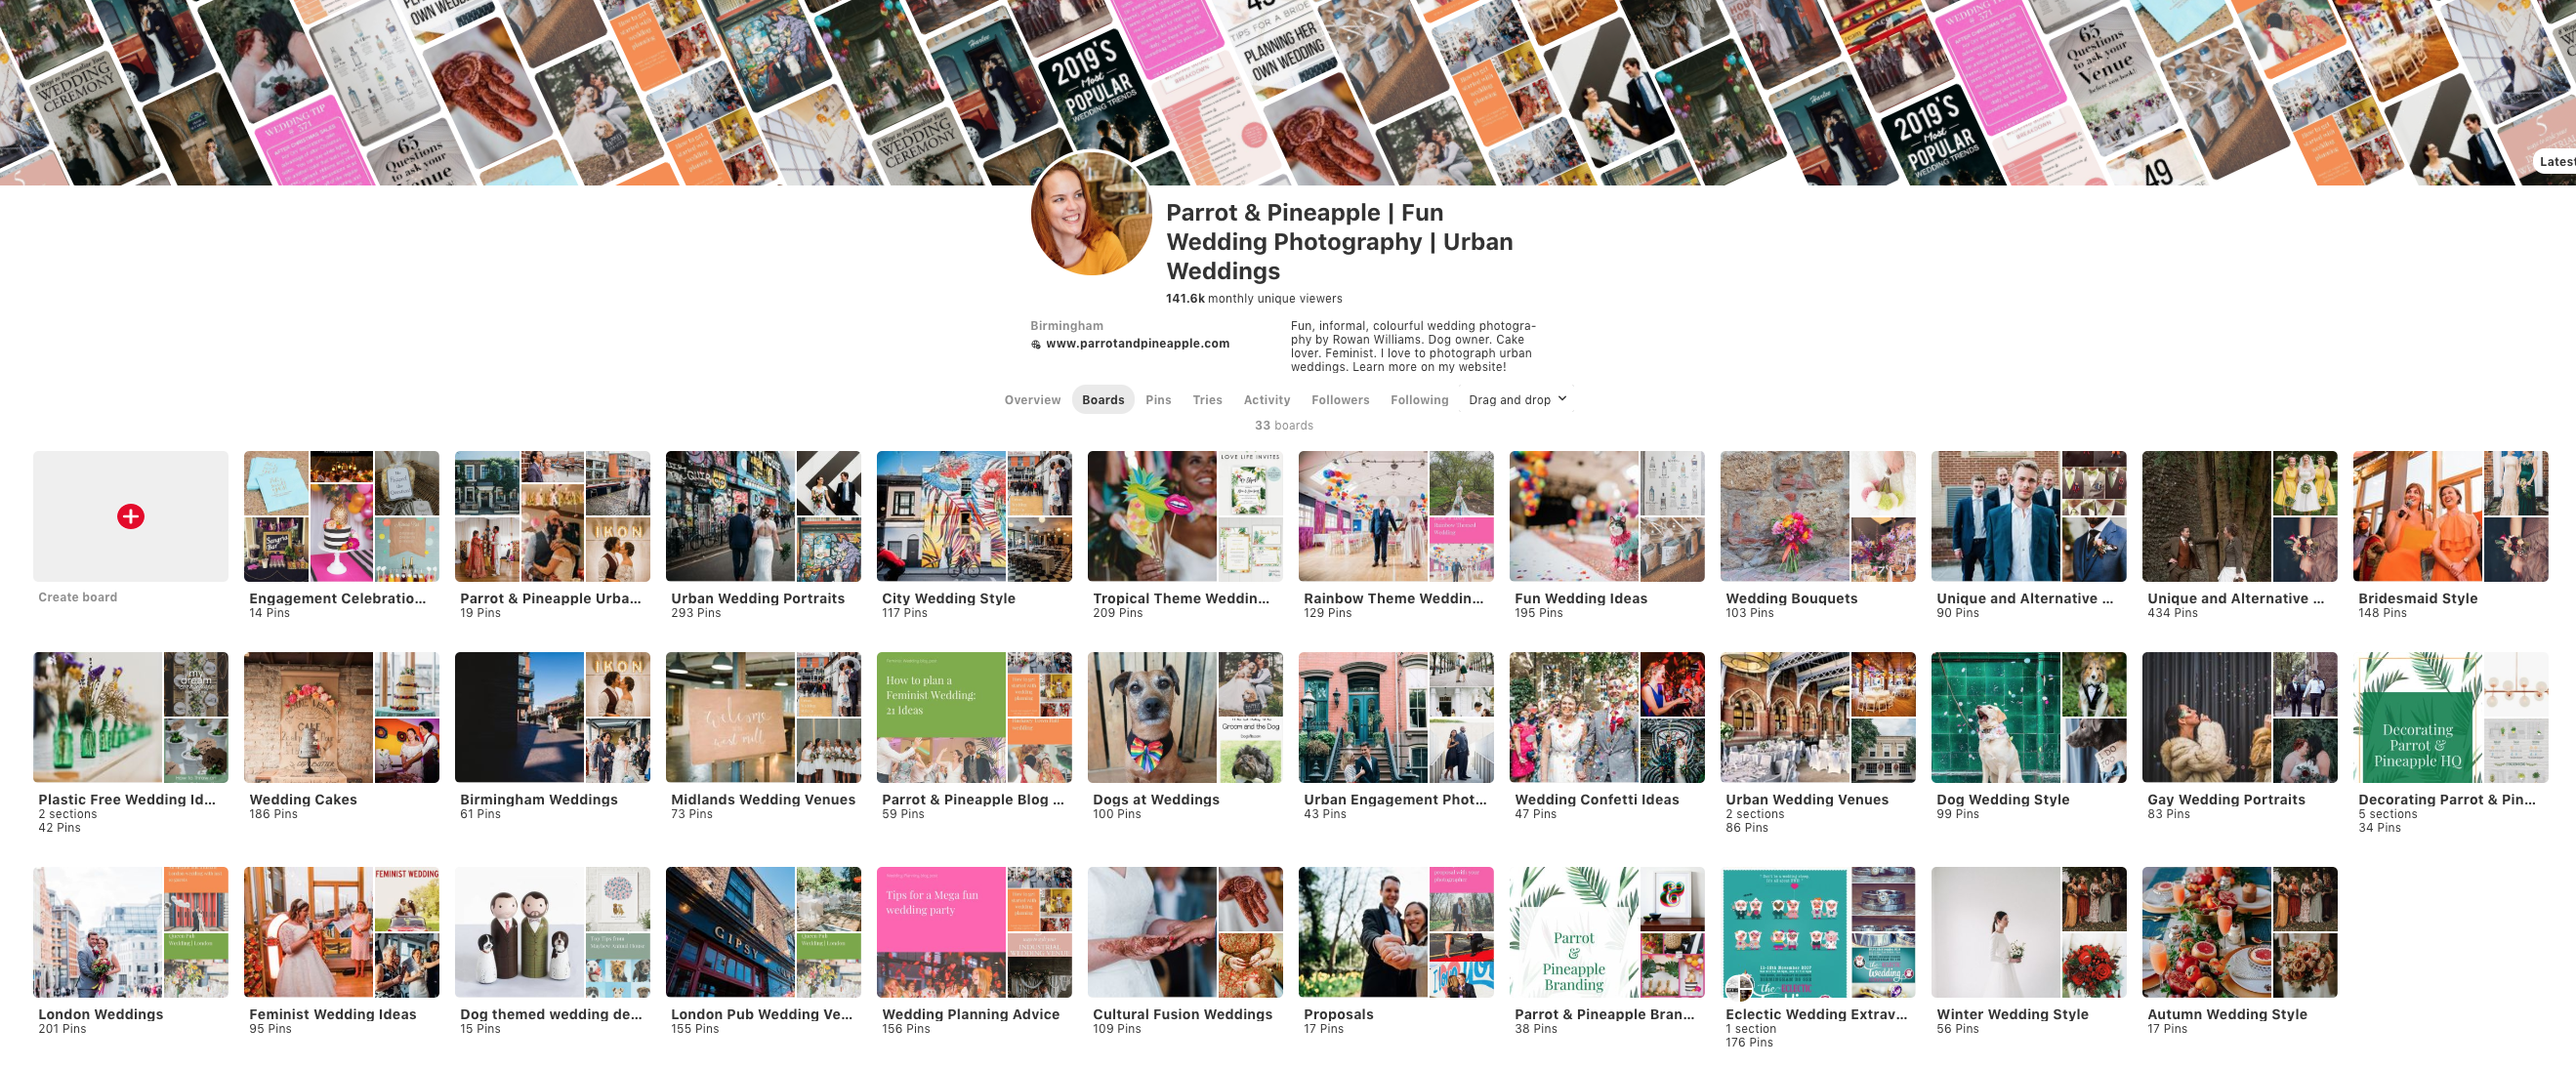 The Parrot and Pineapple pinterest account. How to use Pinterest to plan your wedding.